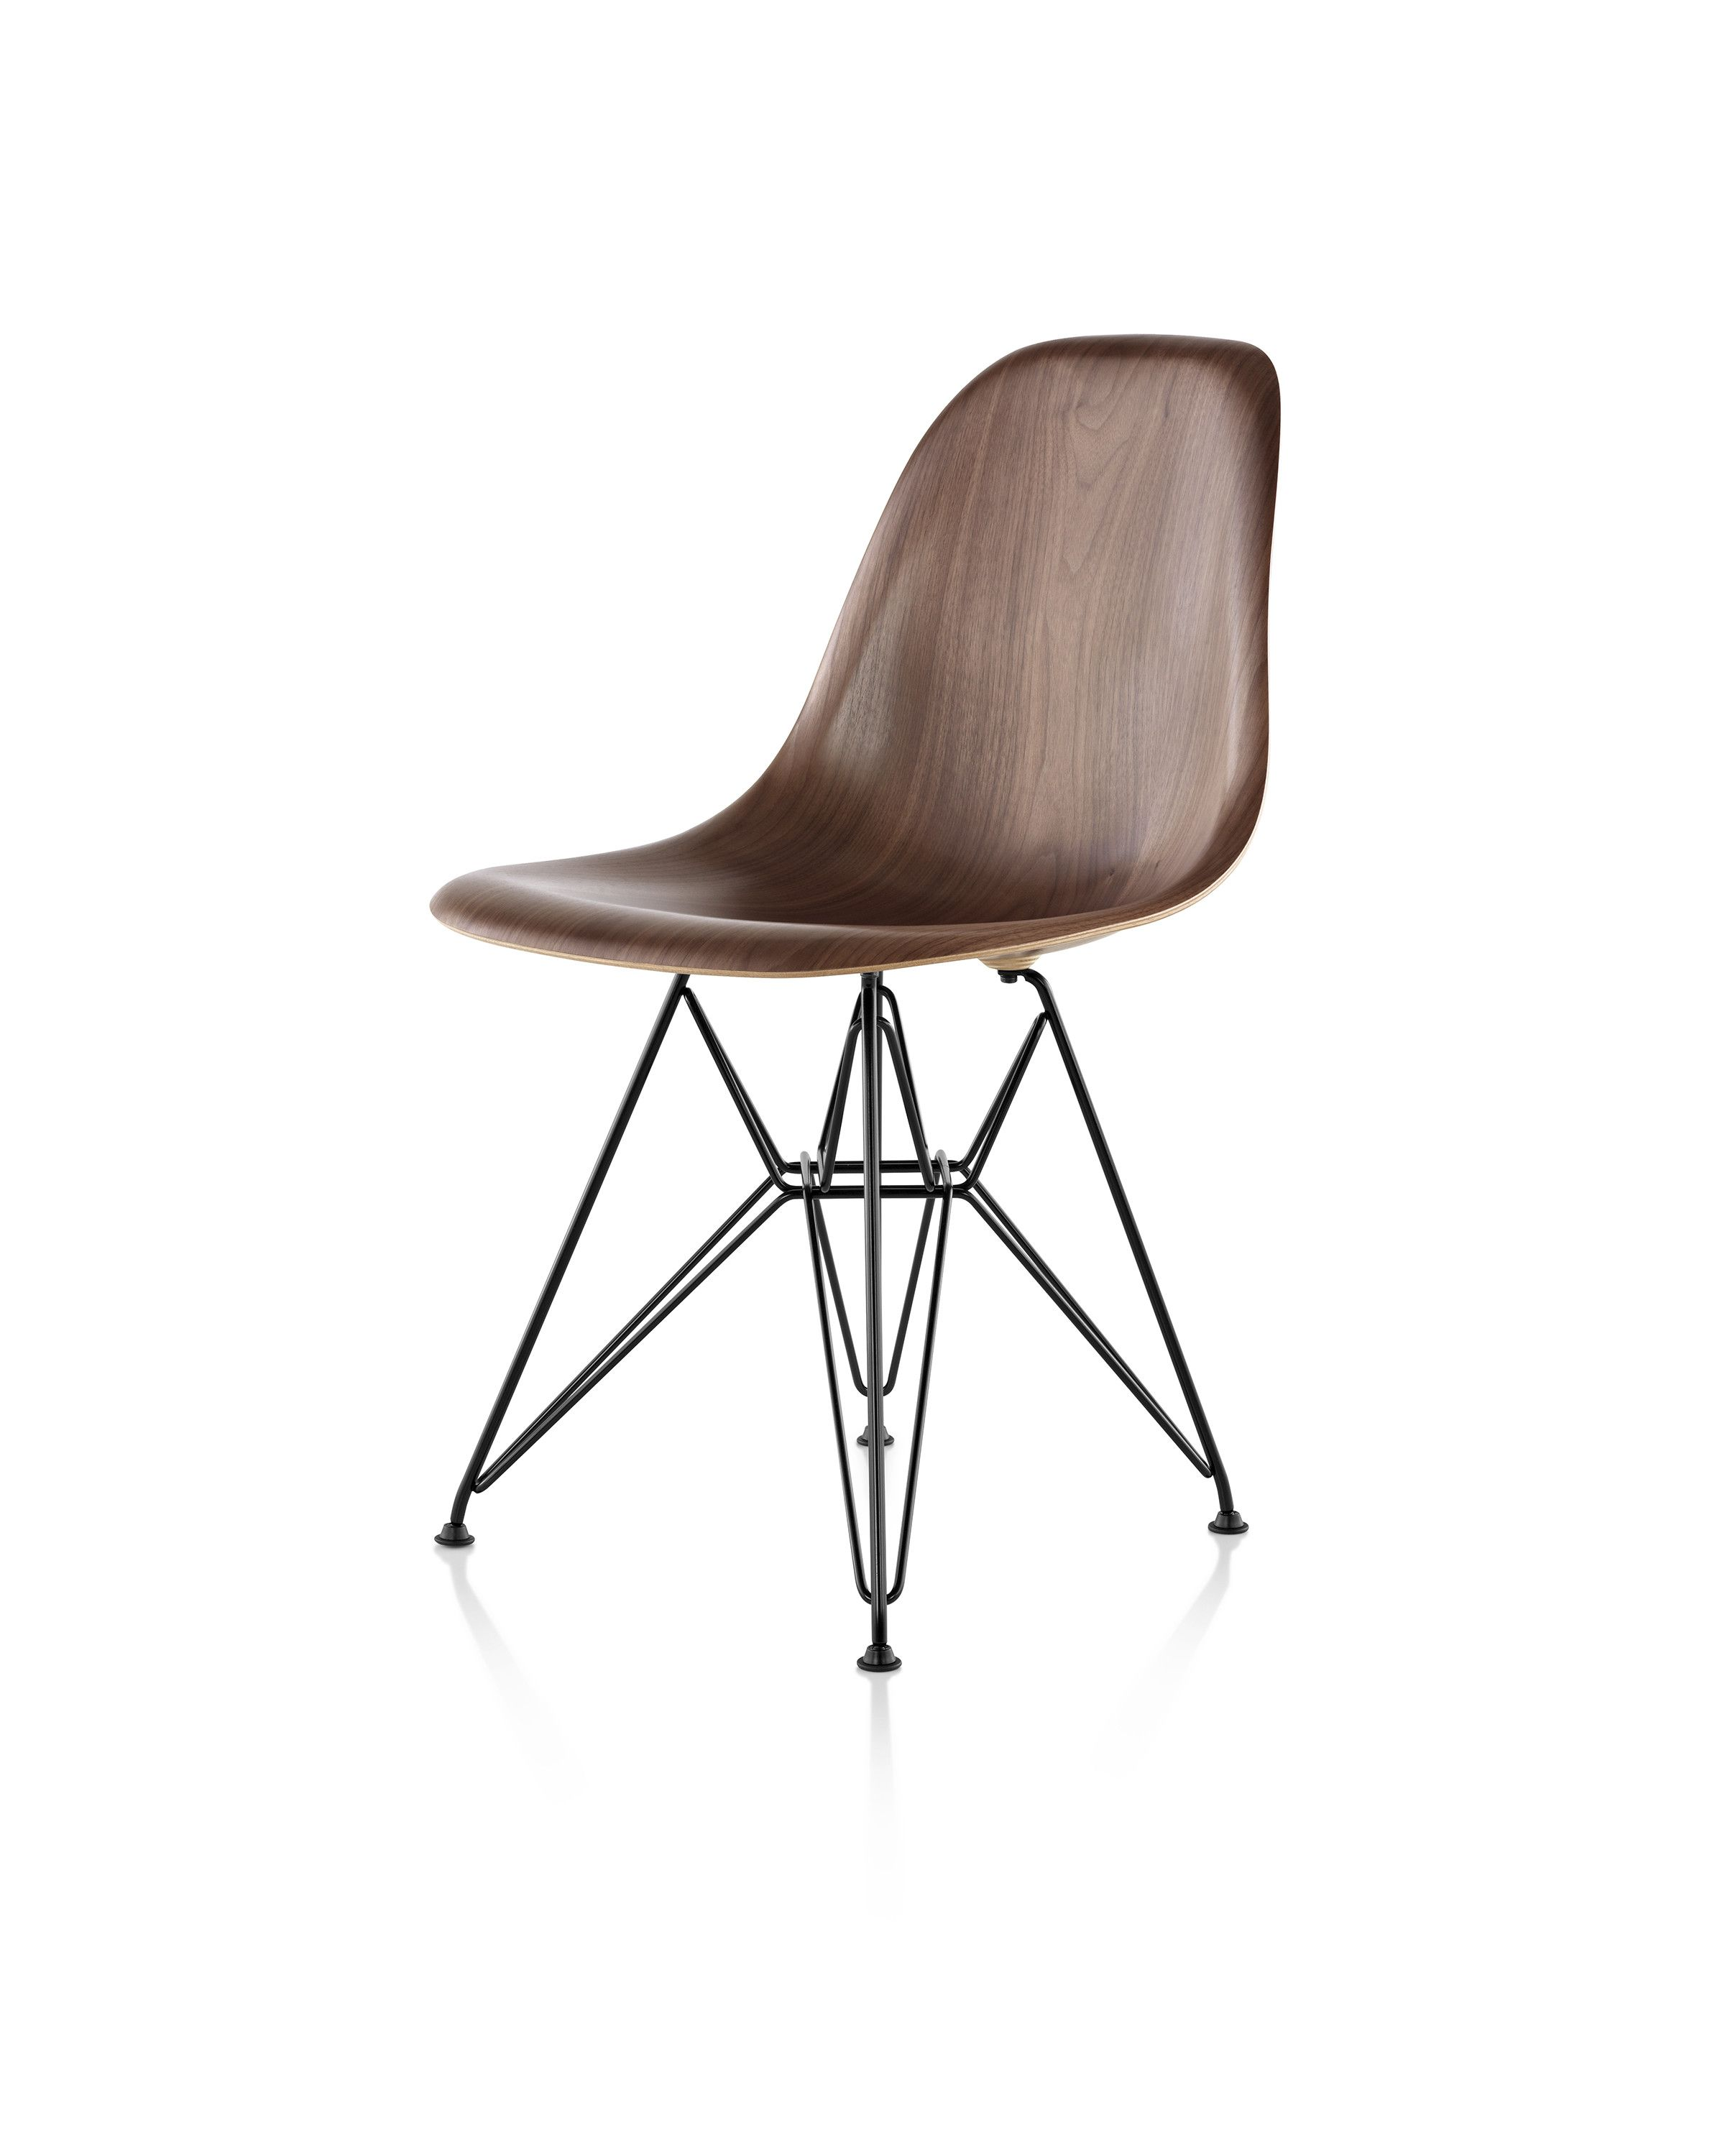 Broom chair for emeco in 2012 to showcase the properties of a new wood -  Eames Molded Wood Chair By Hermanmiller